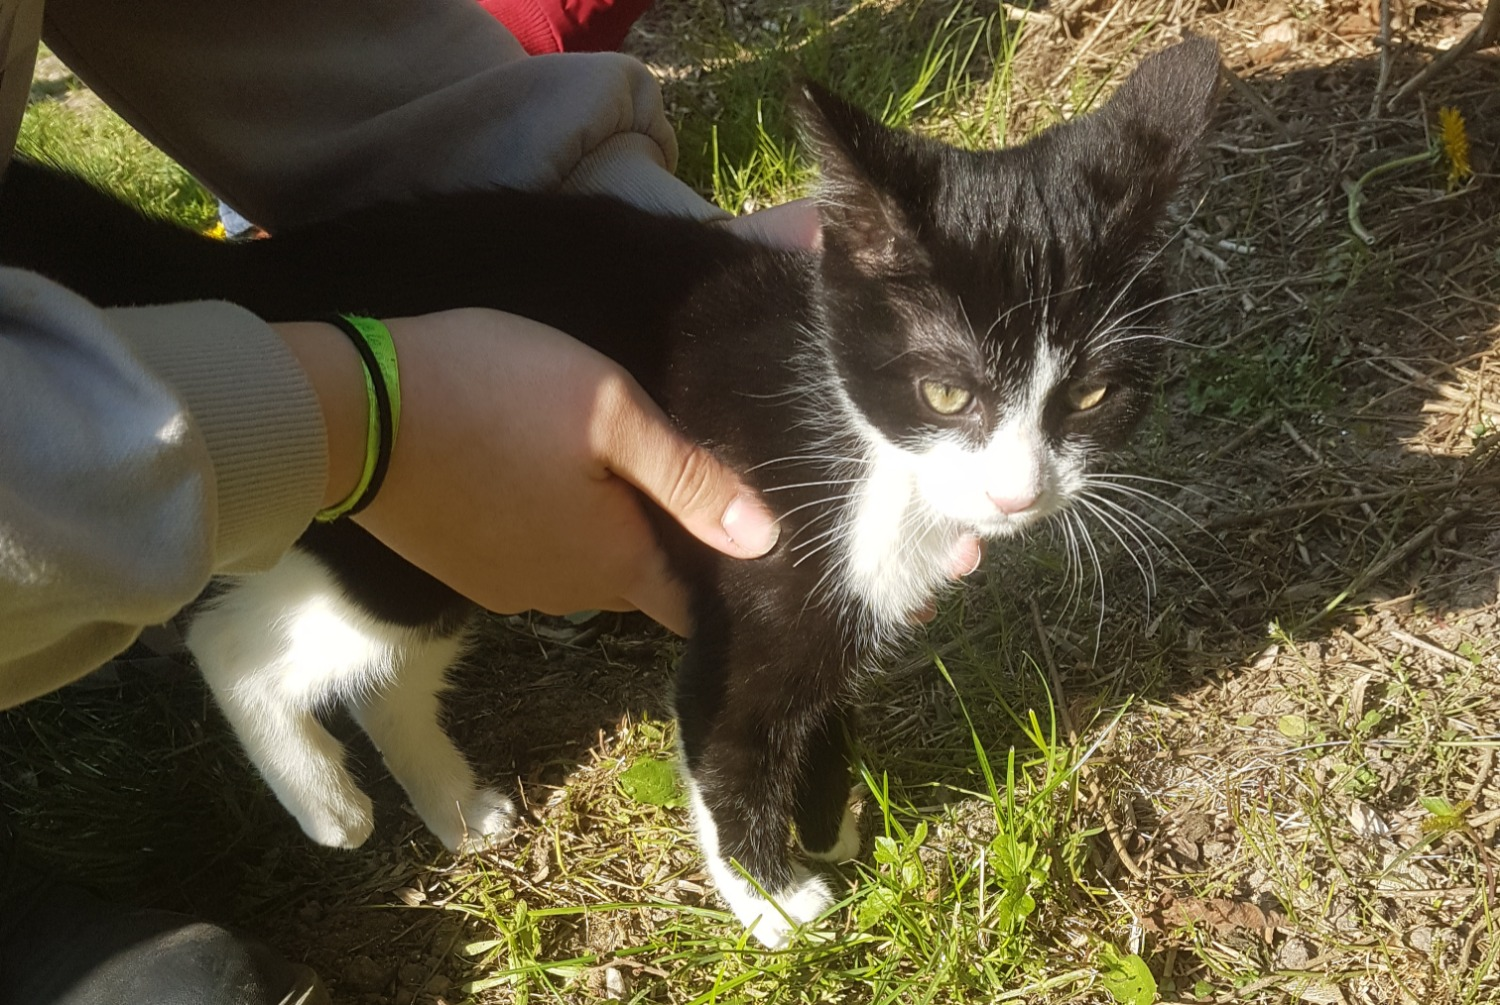 Discovery alert Cat Unknown , Between 1 and 3 months Morsang-sur-Orge France